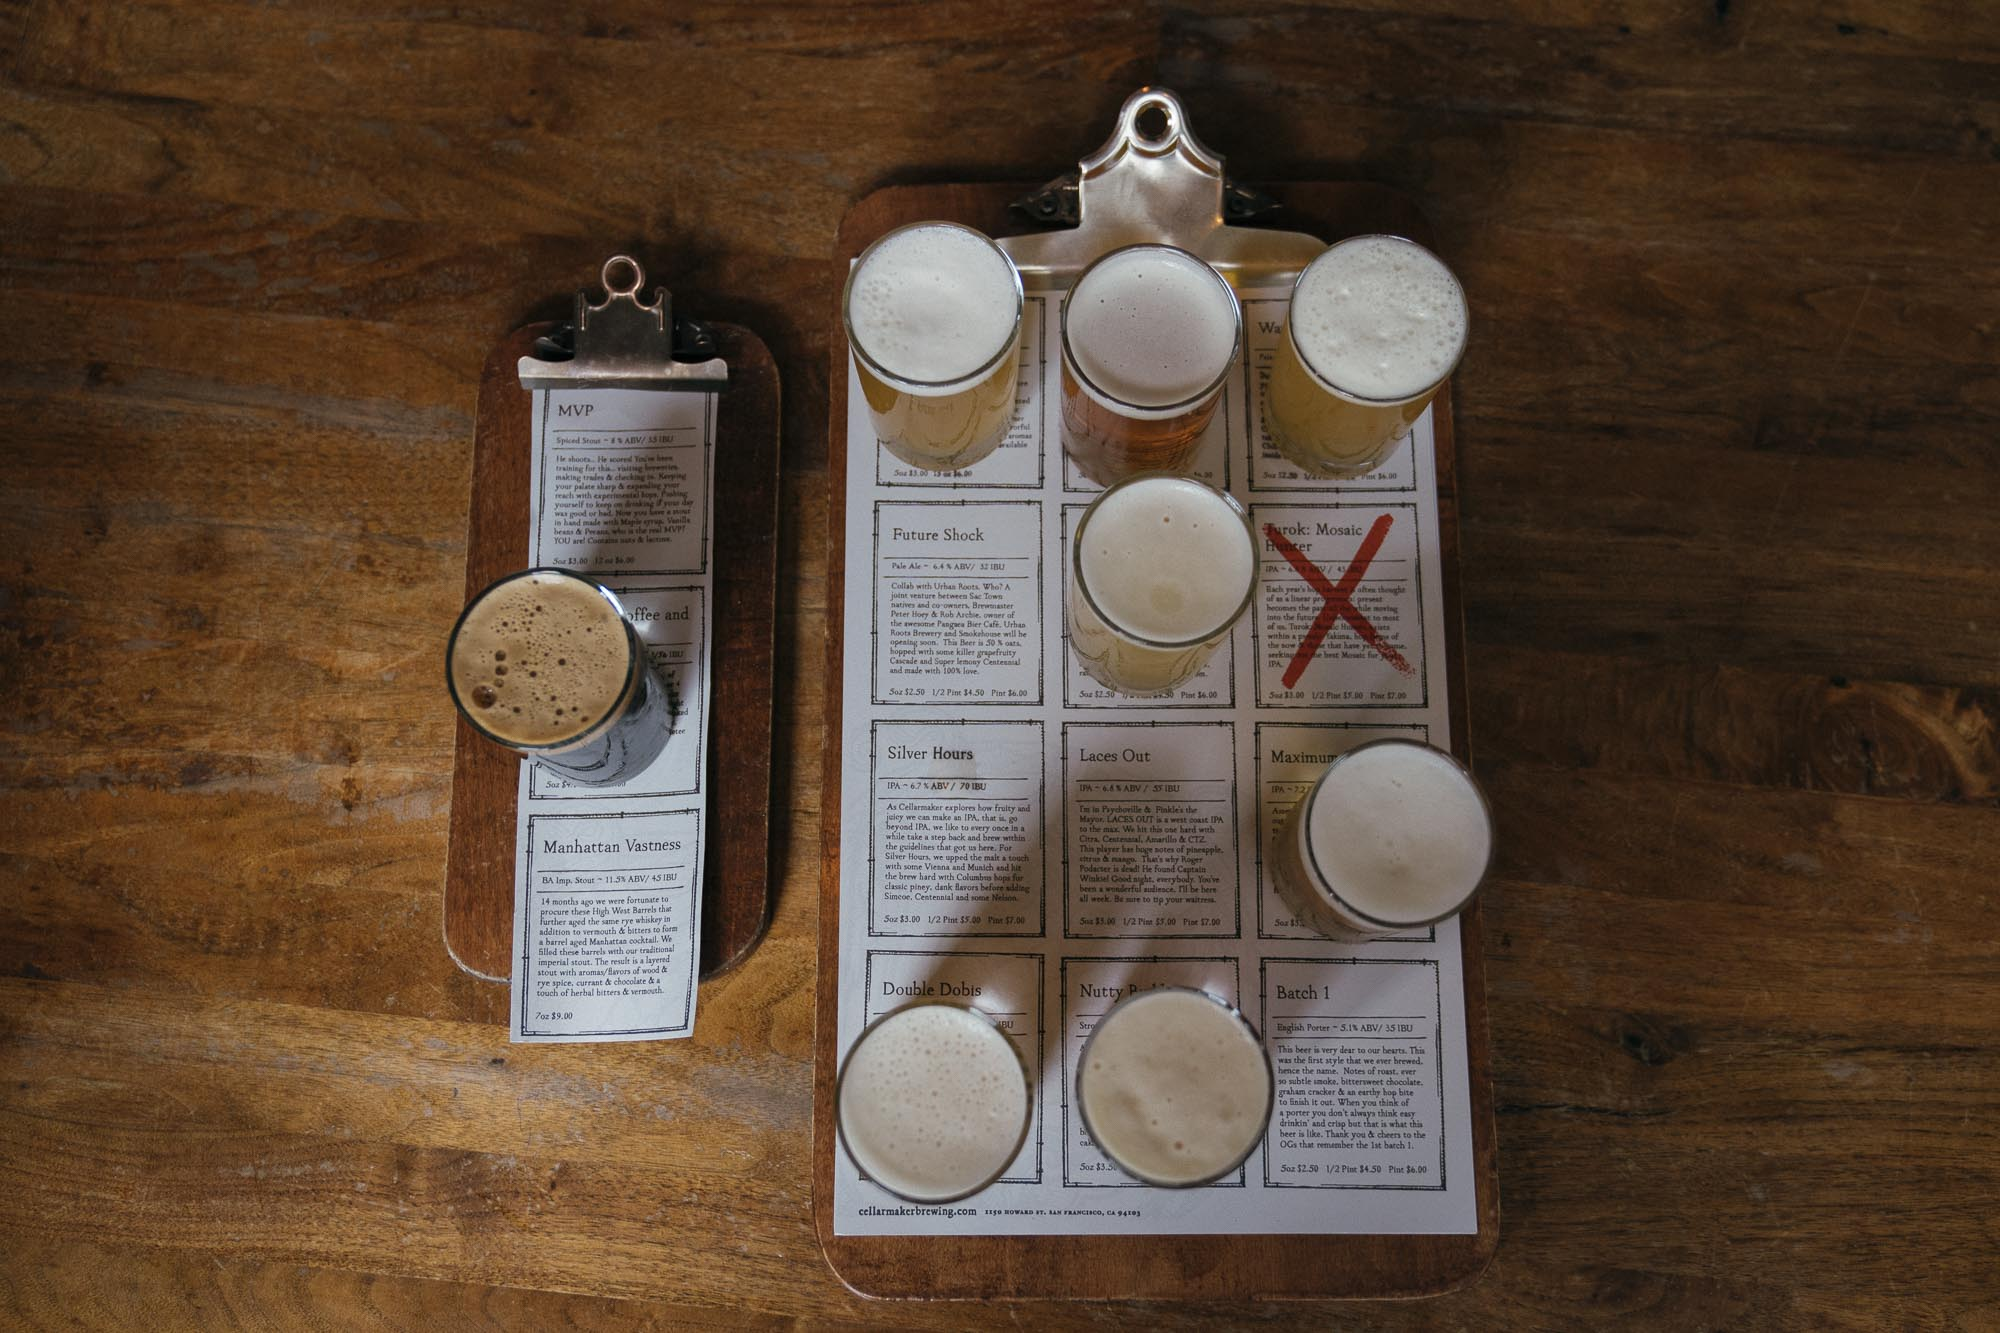 A flight of beers at Cellarmaker